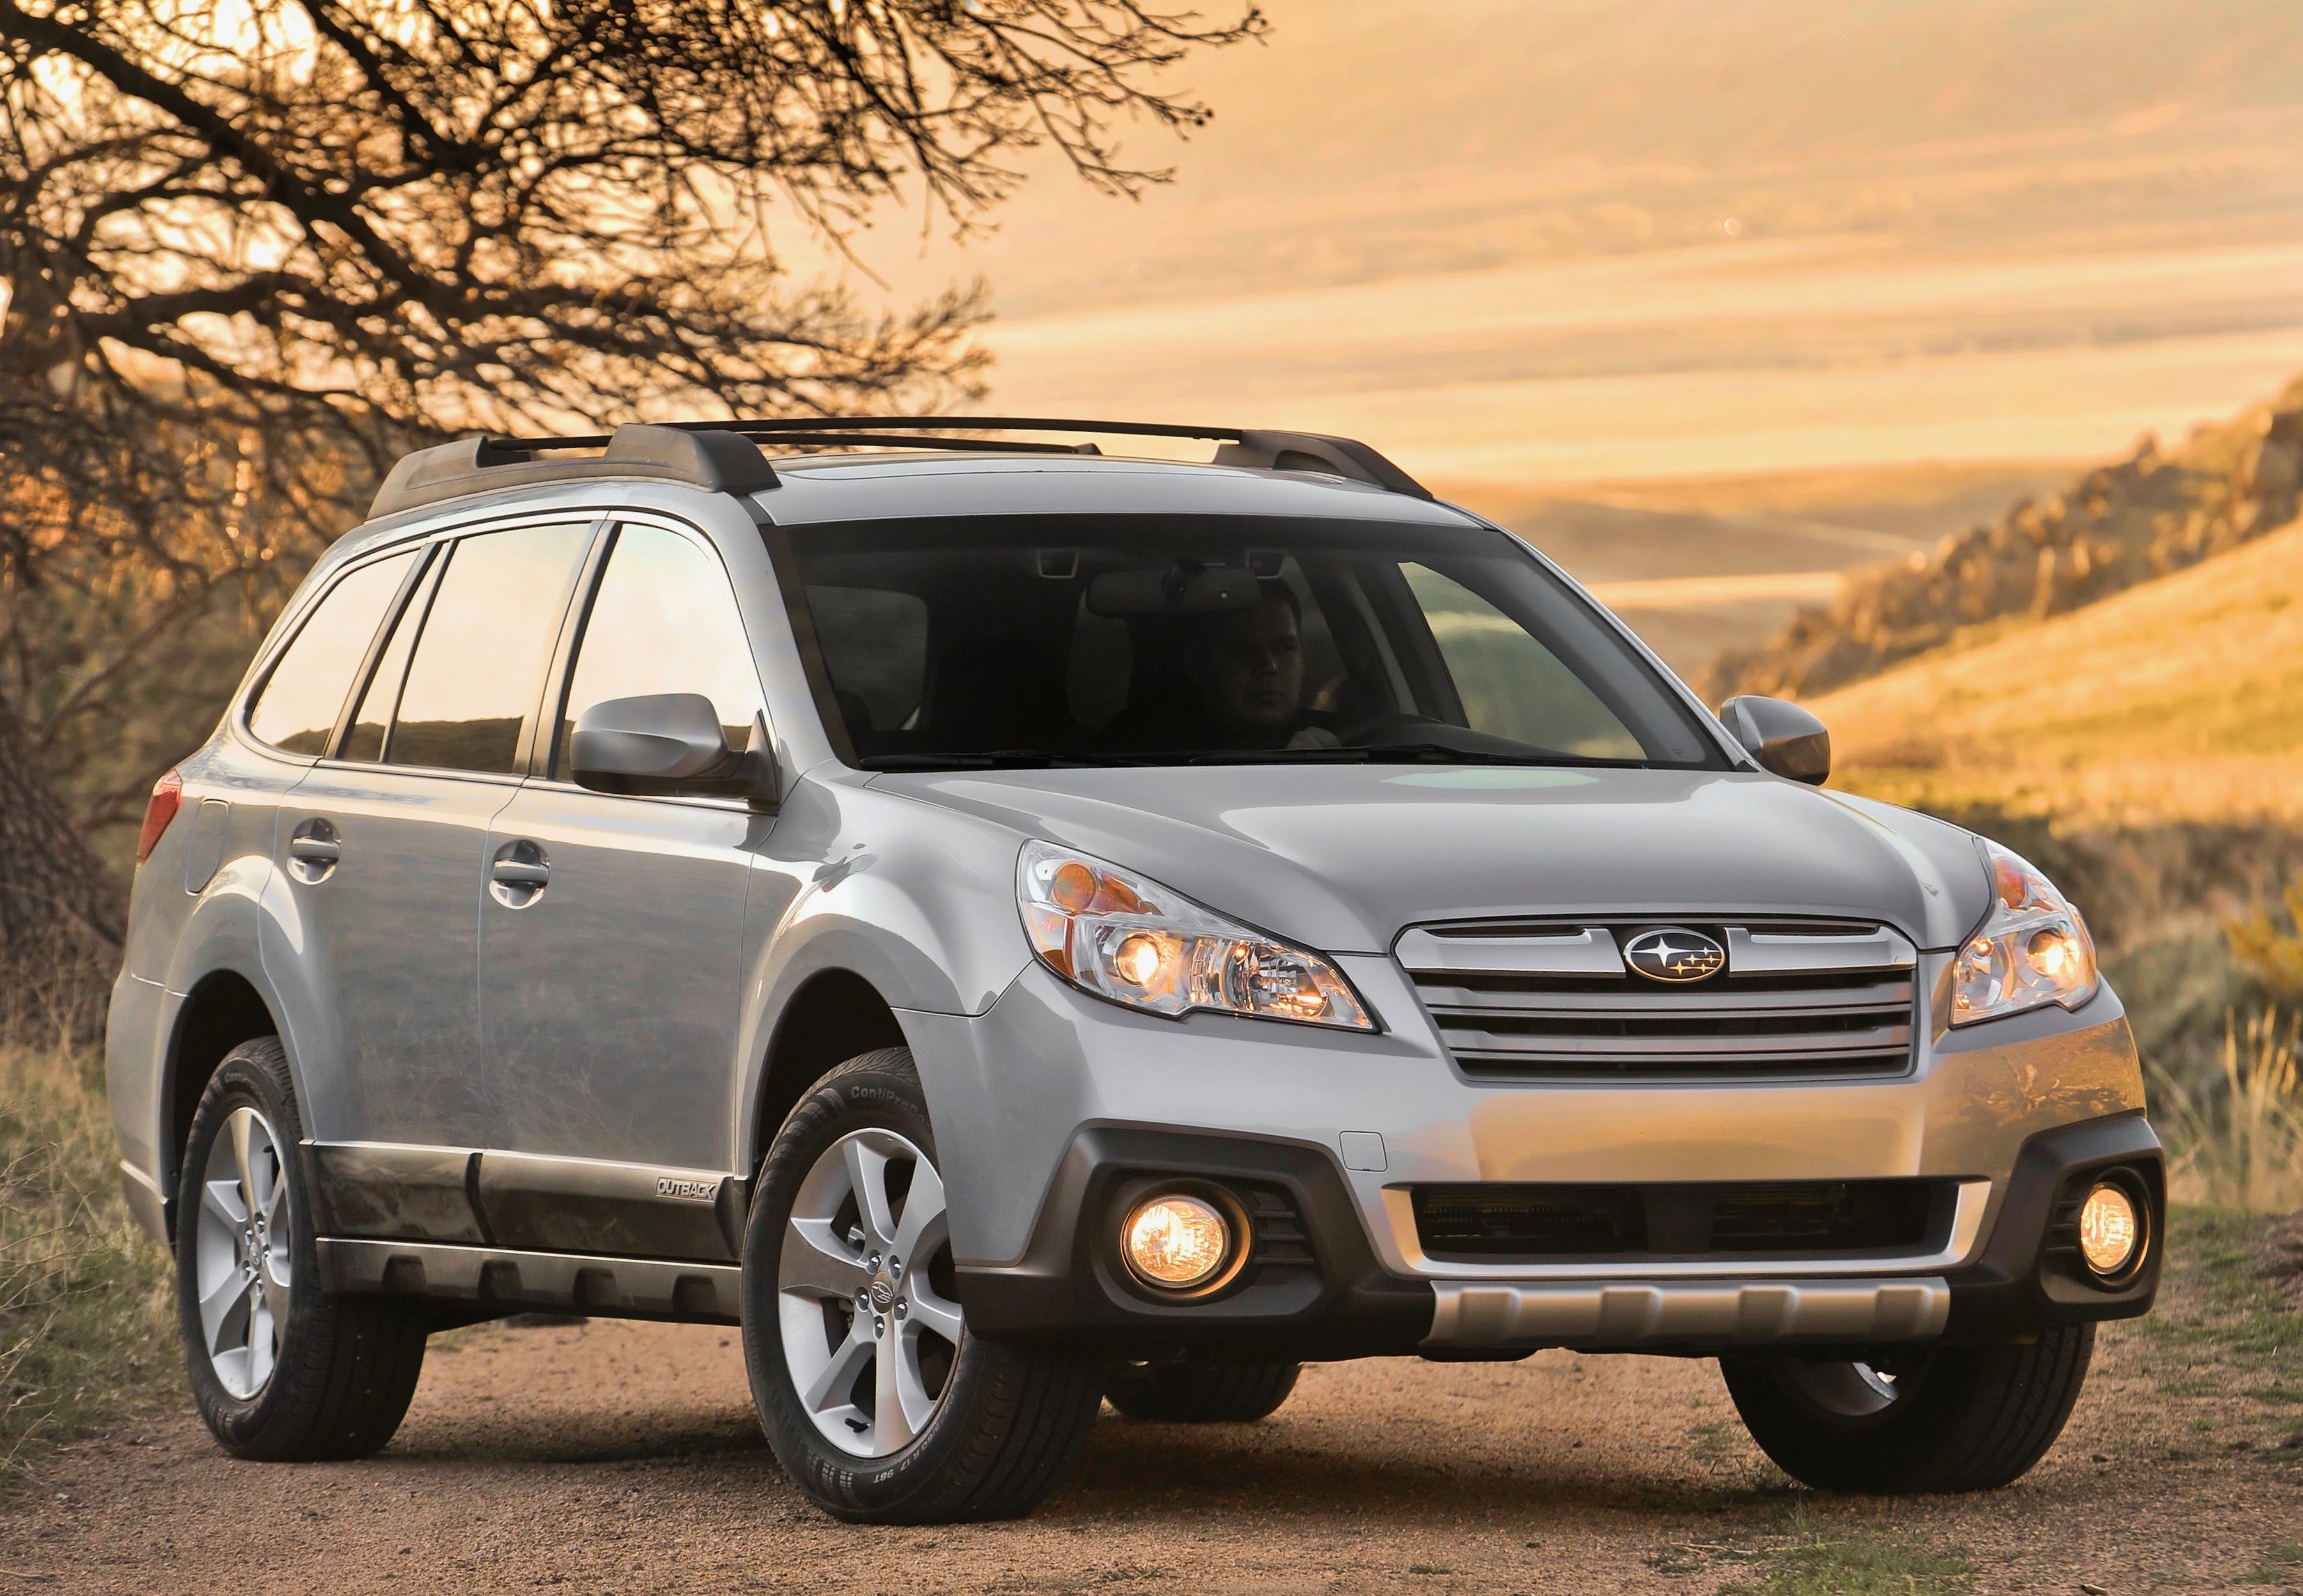 Best Subaru Outback Year >> An Inside Look At The 2010 2014 Subaru Outback Carfax